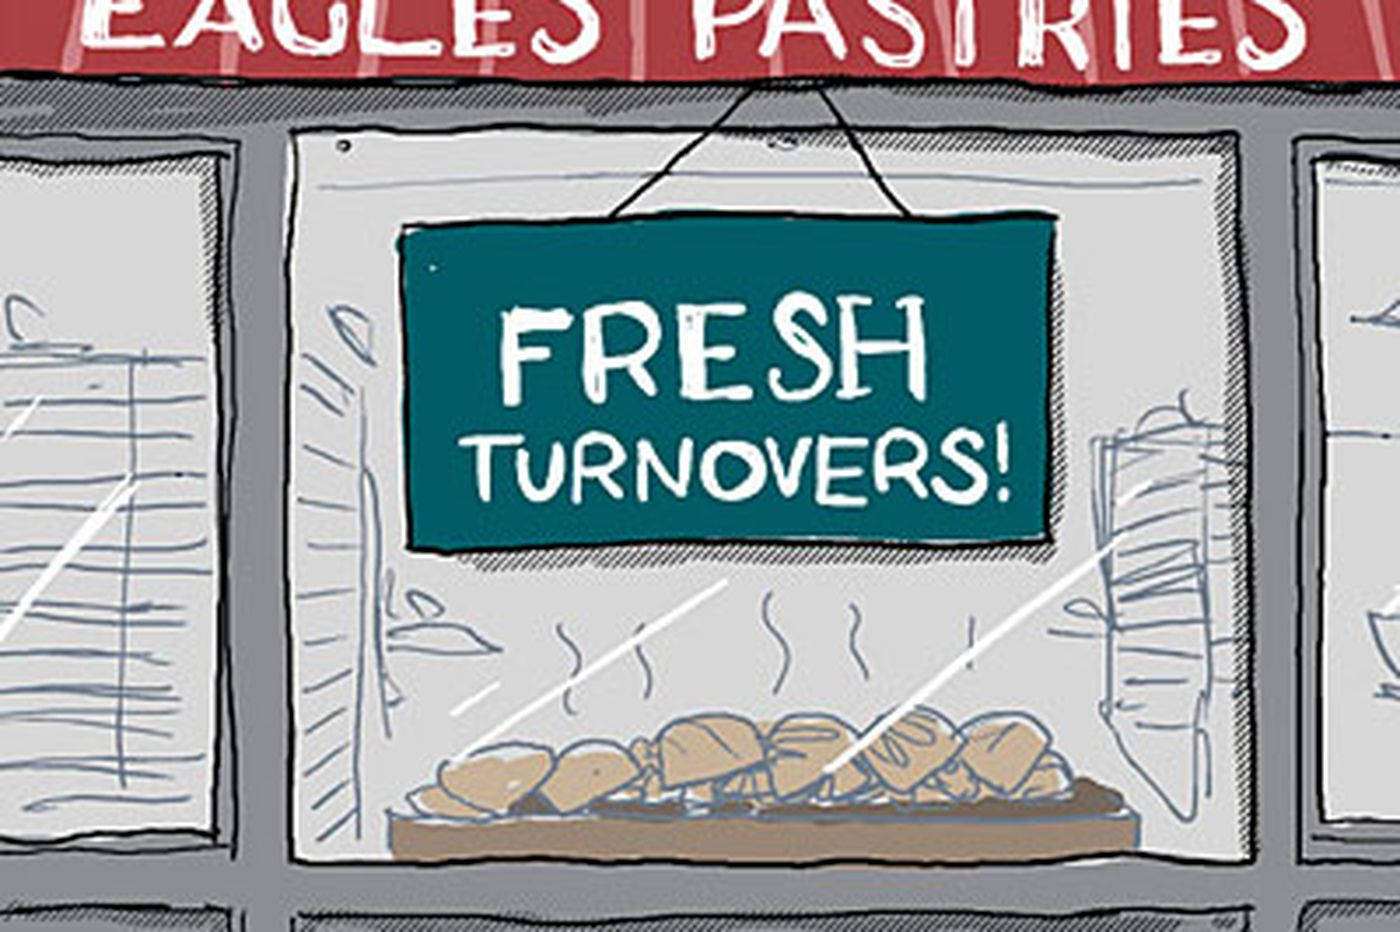 In honor of the Eagles: It's turnover time